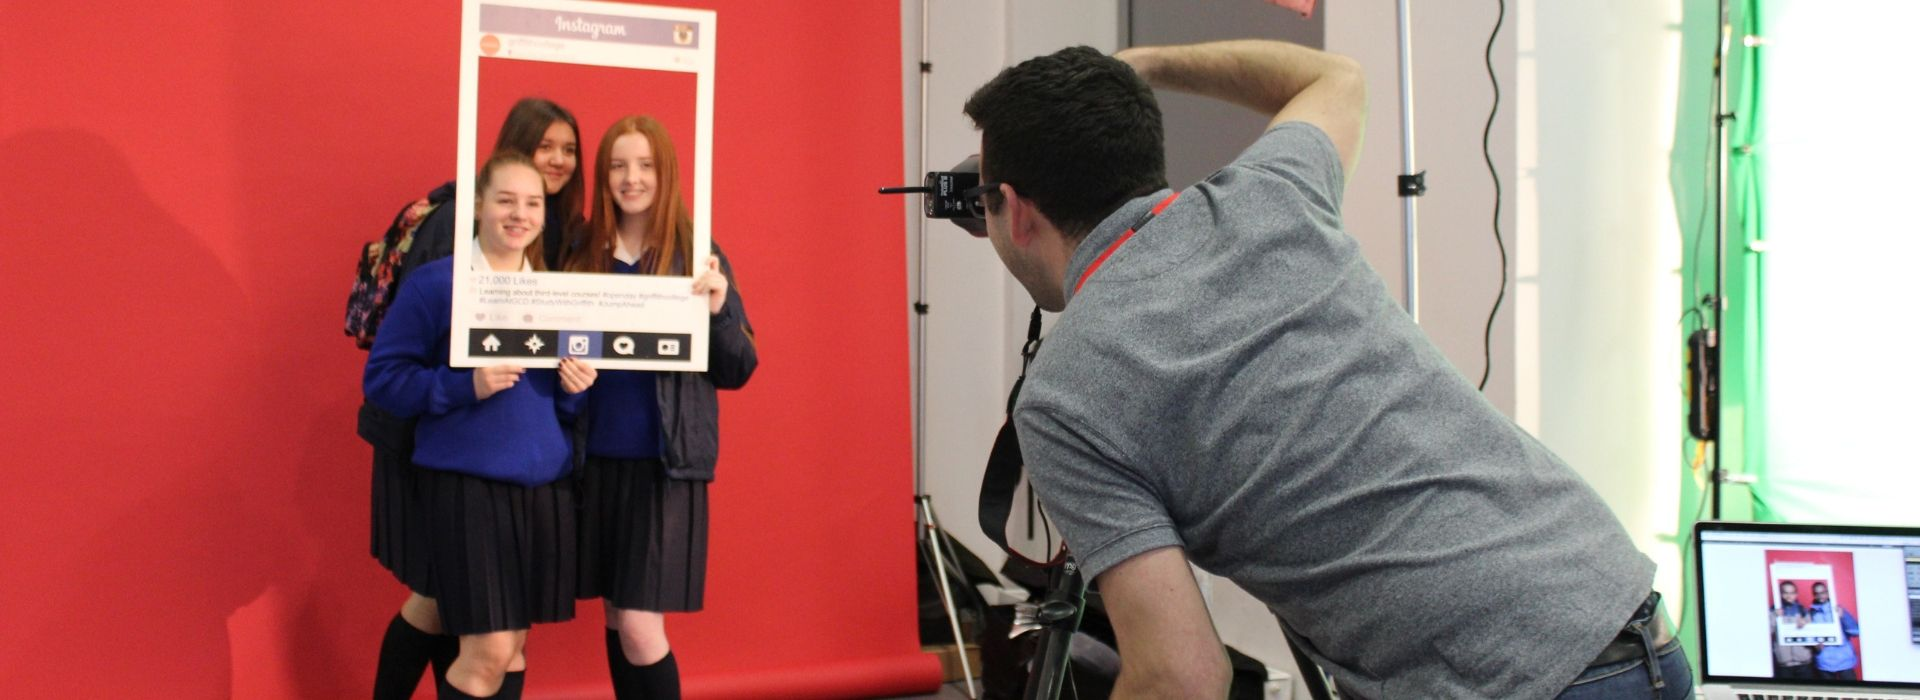 Students visit a Griffith College open day and pose with an Instagram frame while their photo is taken